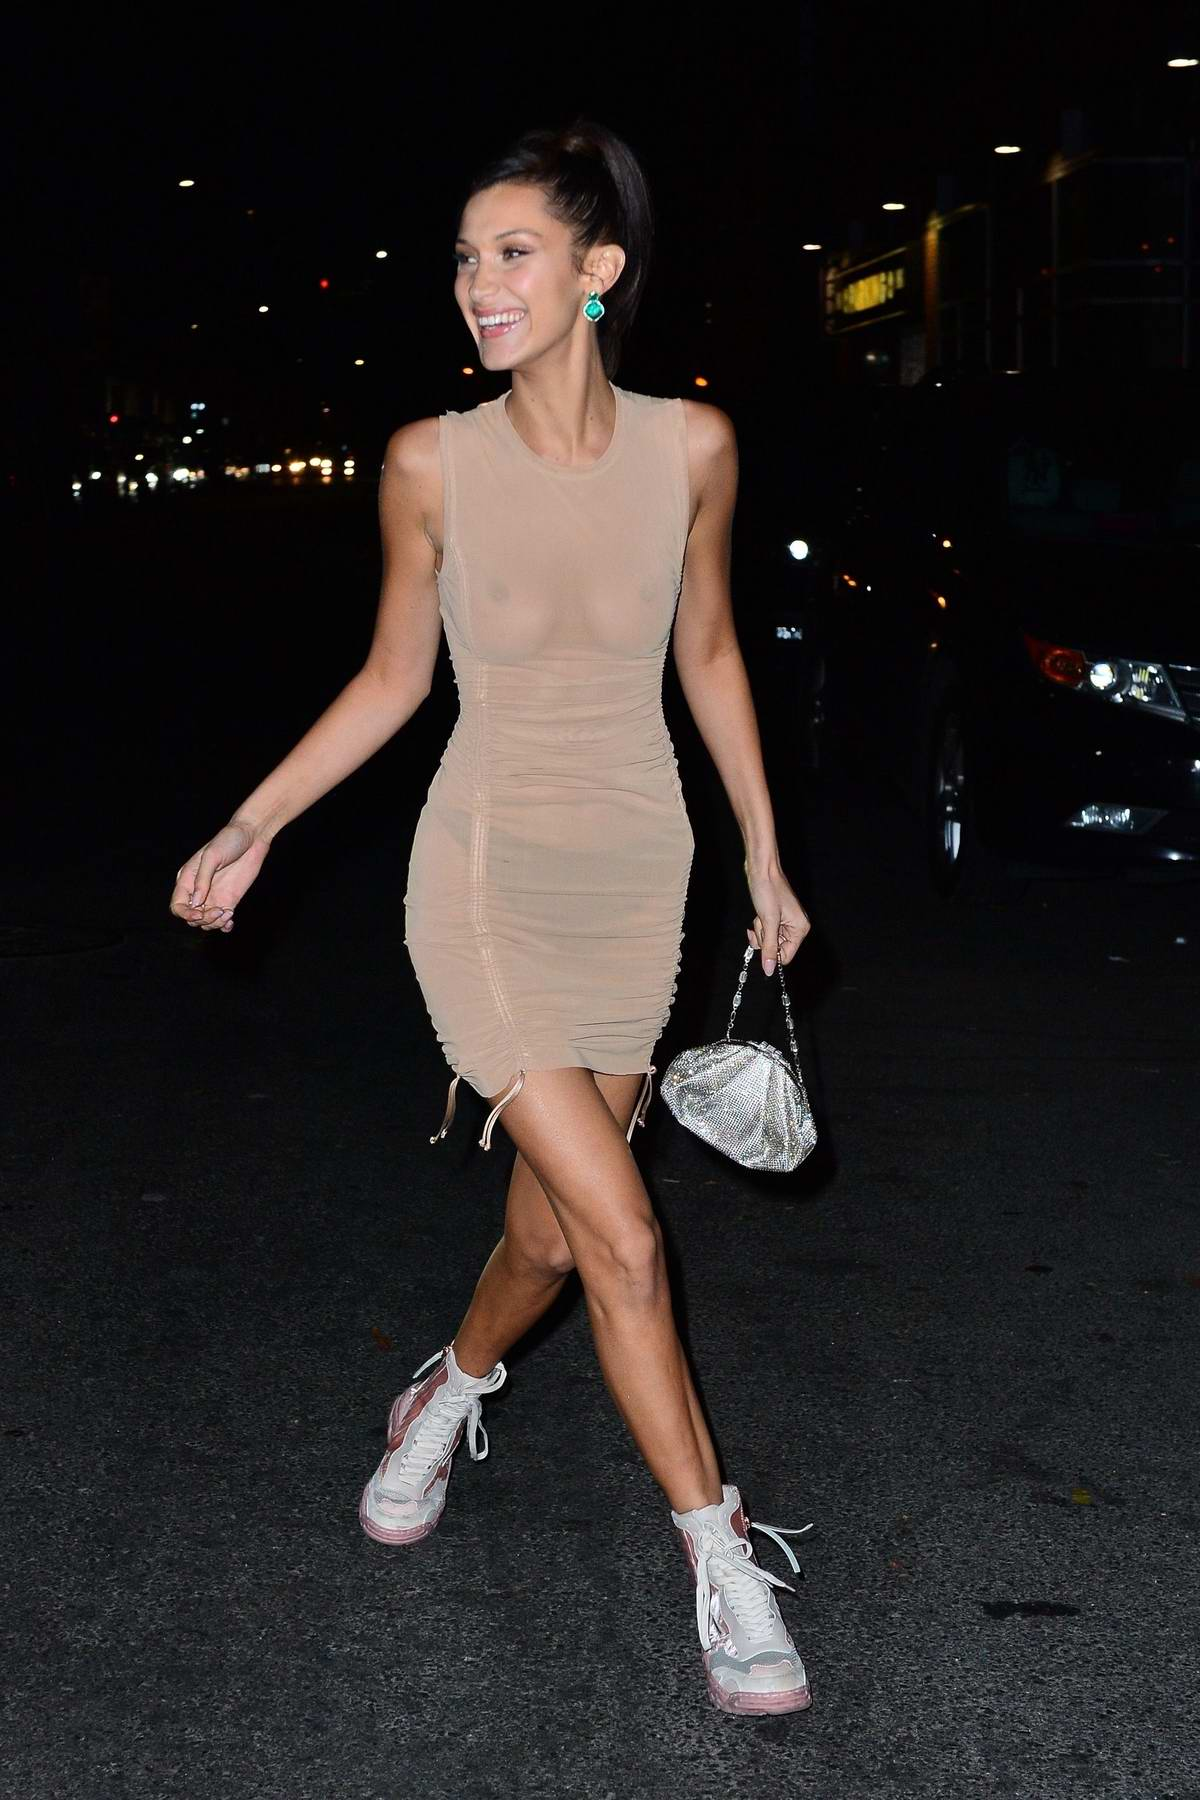 Bella Hadid wears a sheer beige dress while out with The Weeknd after the Victoria's Secret Fashion Show after-party in New York City